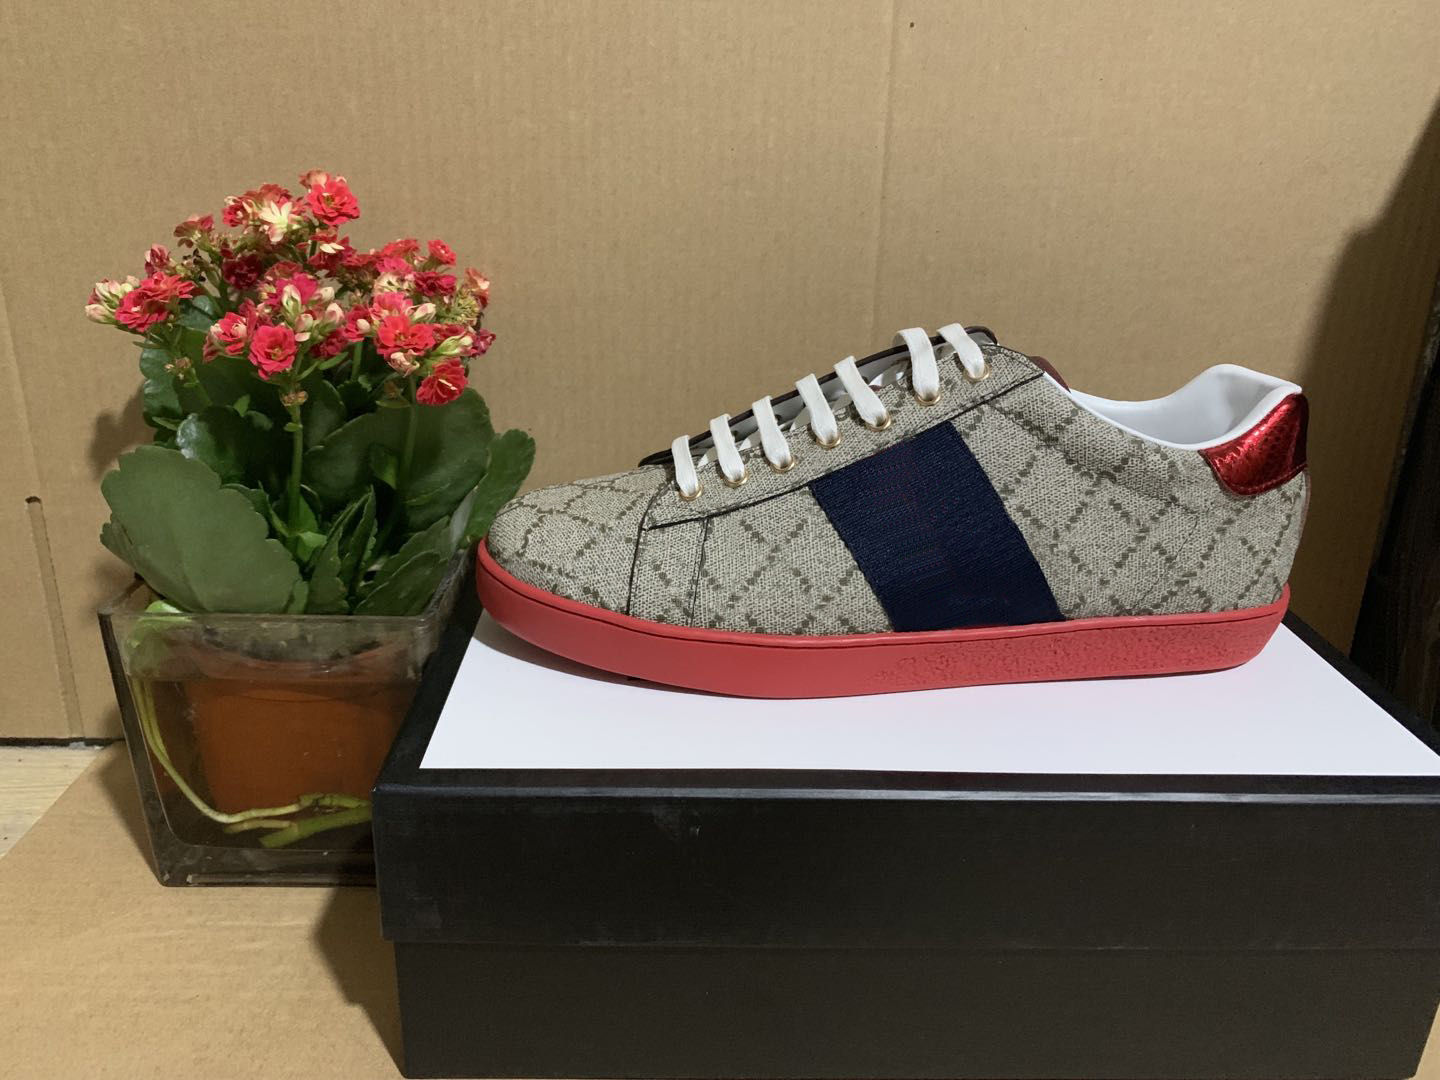 TOP 2021 Best Quality Stripe New Designer Shoes ACE Embroidered Mens real Leather Designer Sneakers Woman man Casual ace Shoes